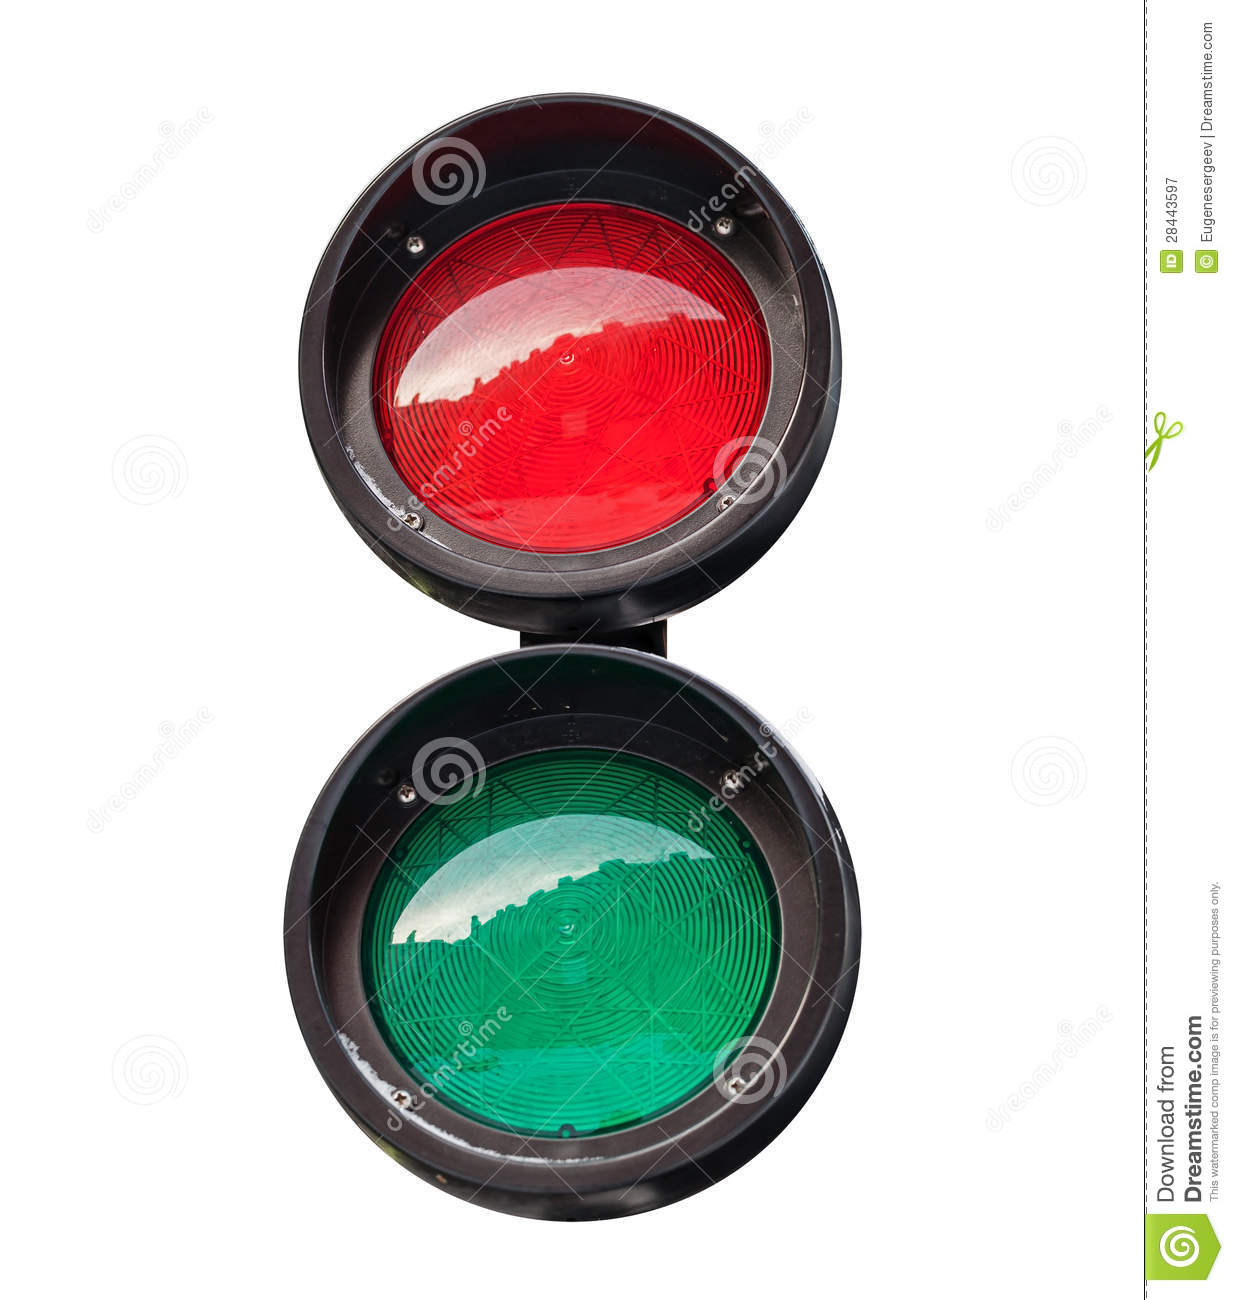 Red And Green Small Round Traffic Light Royalty Free Stock